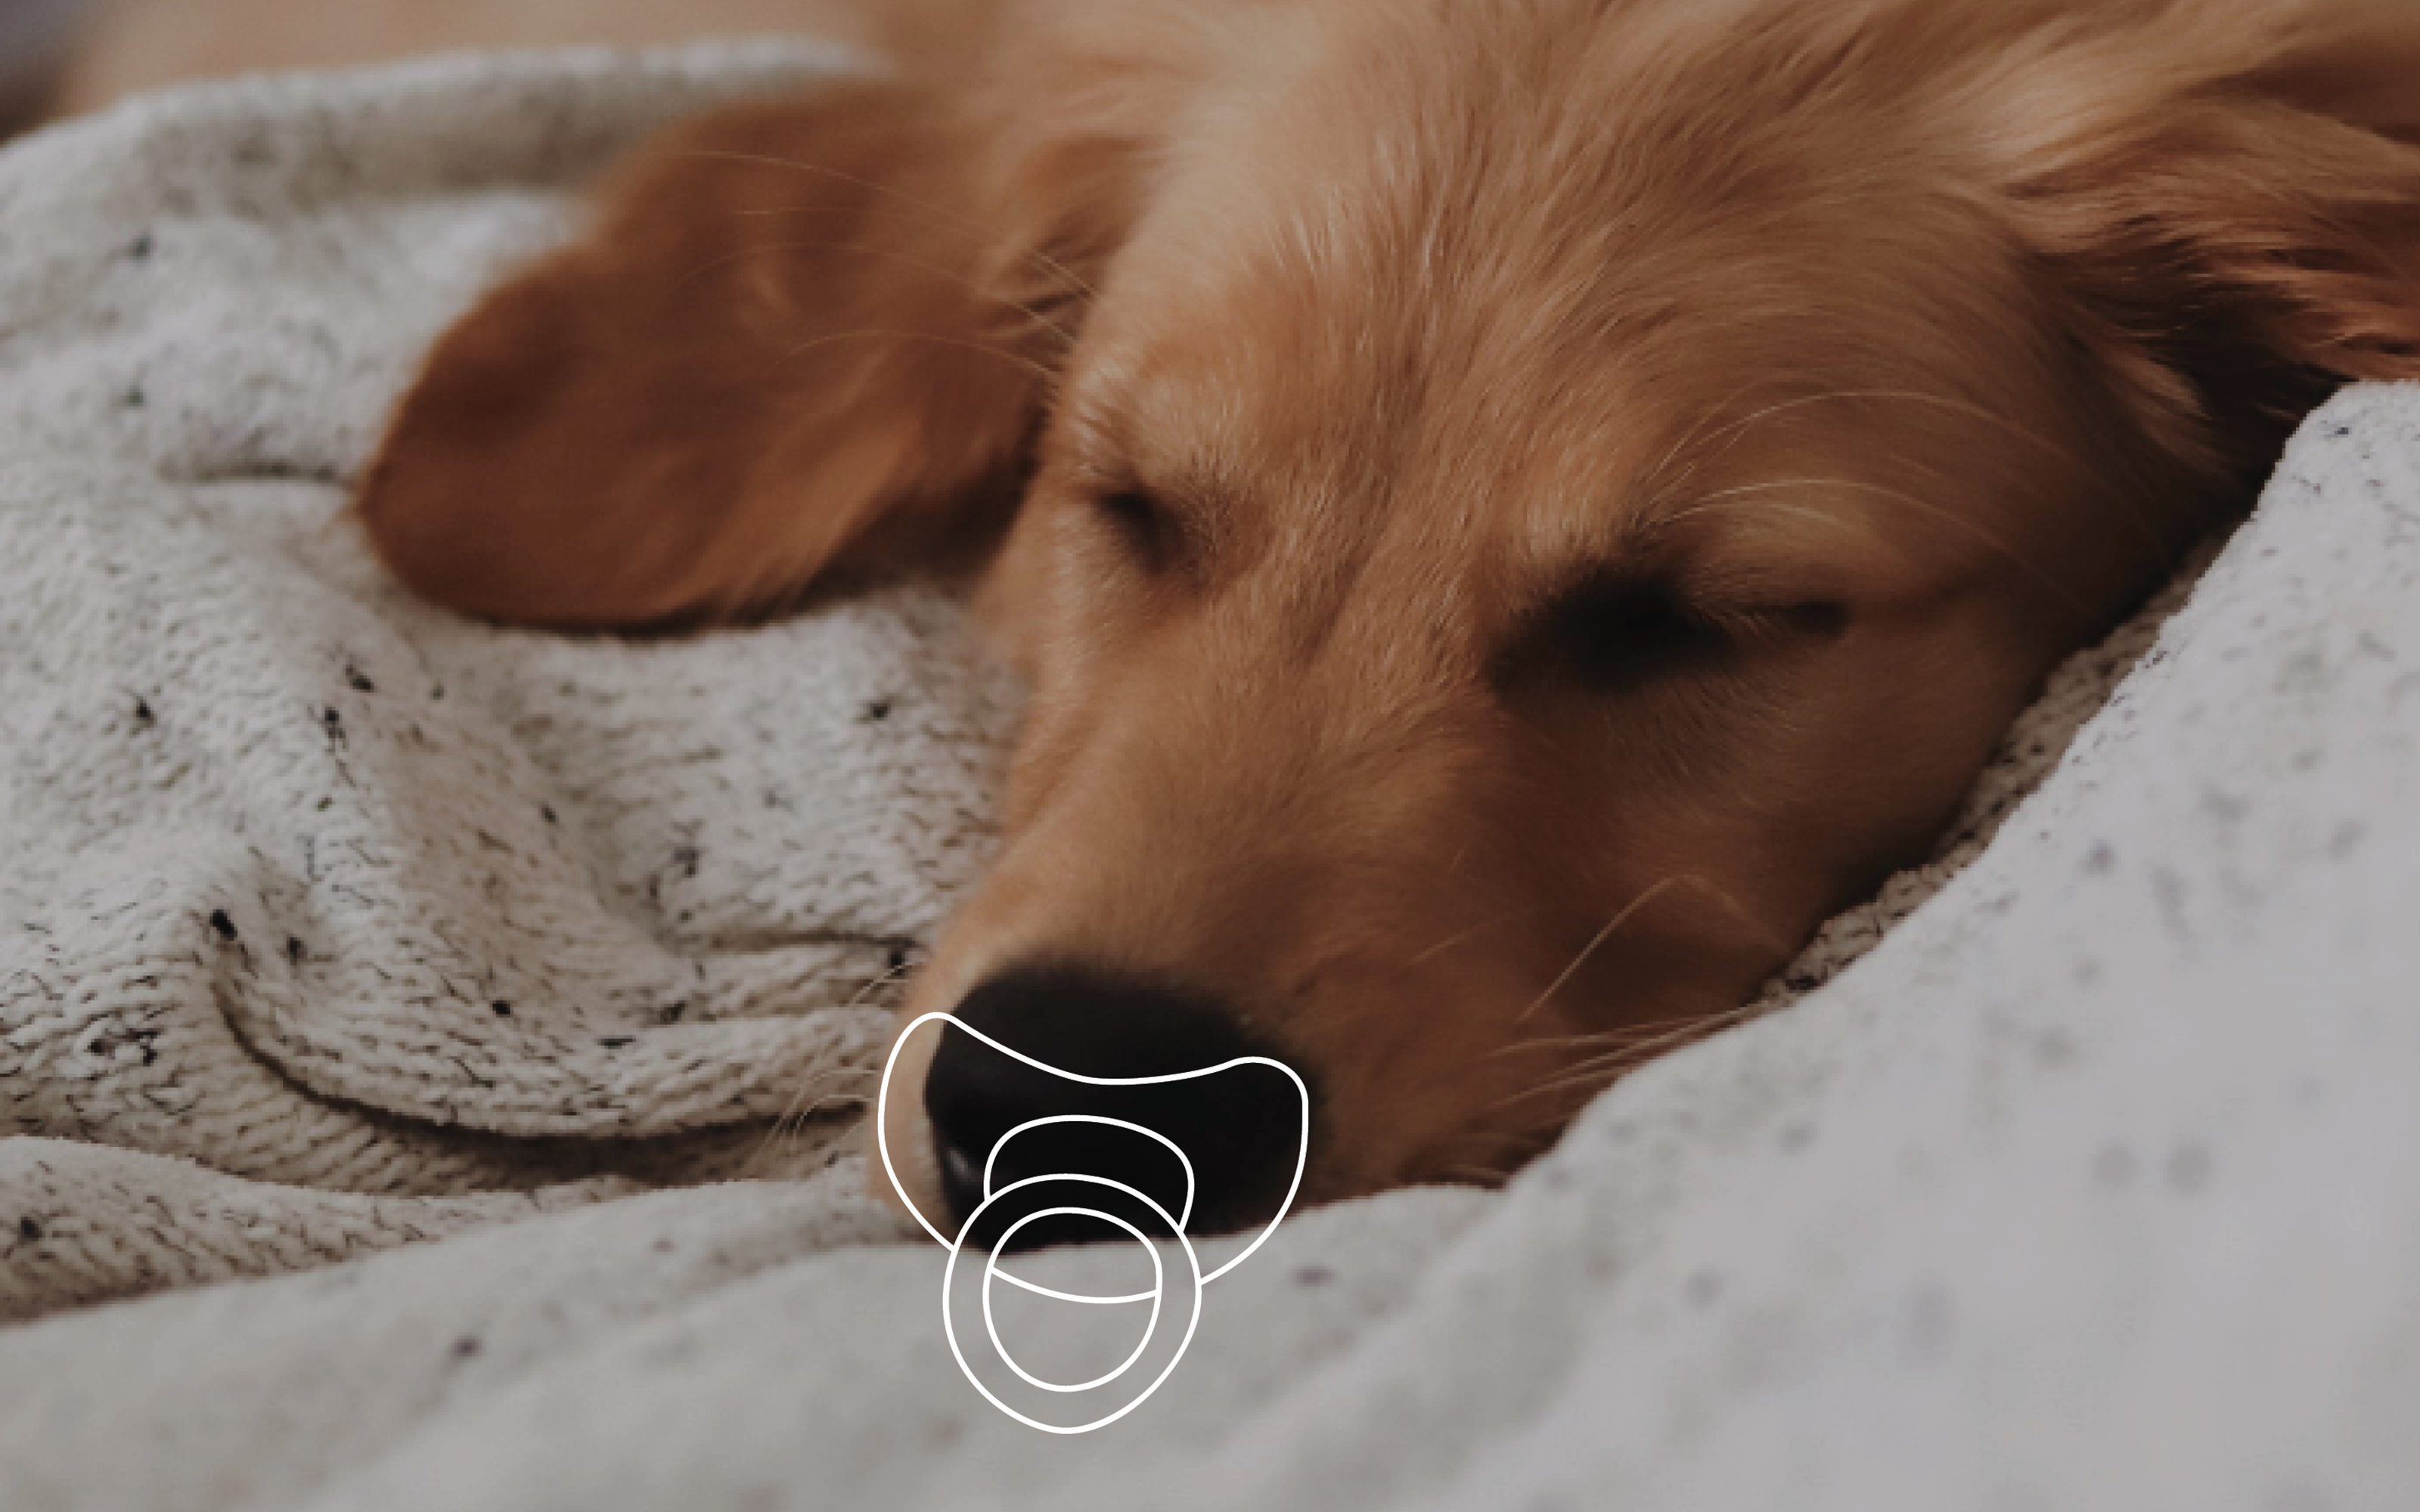 Photo of a puppy sleeping with an illustrated pacifier in its mouth.